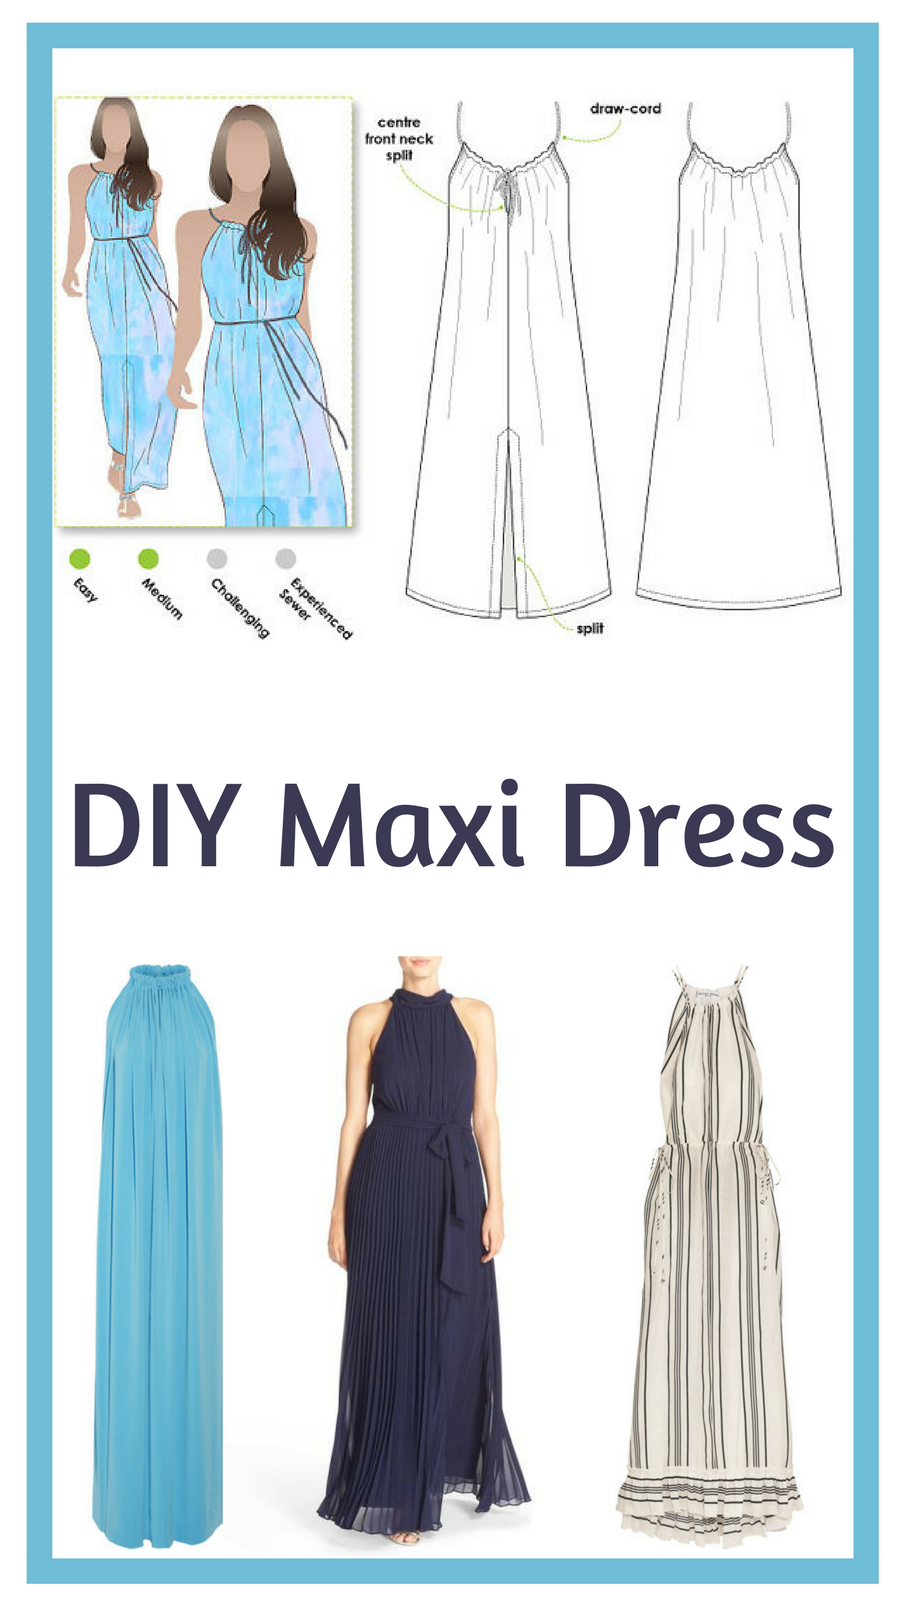 I love maxi dresses for the summer cool sewing pattern afflink i love maxi dresses for the summer cool sewing pattern afflink jeuxipadfo Images